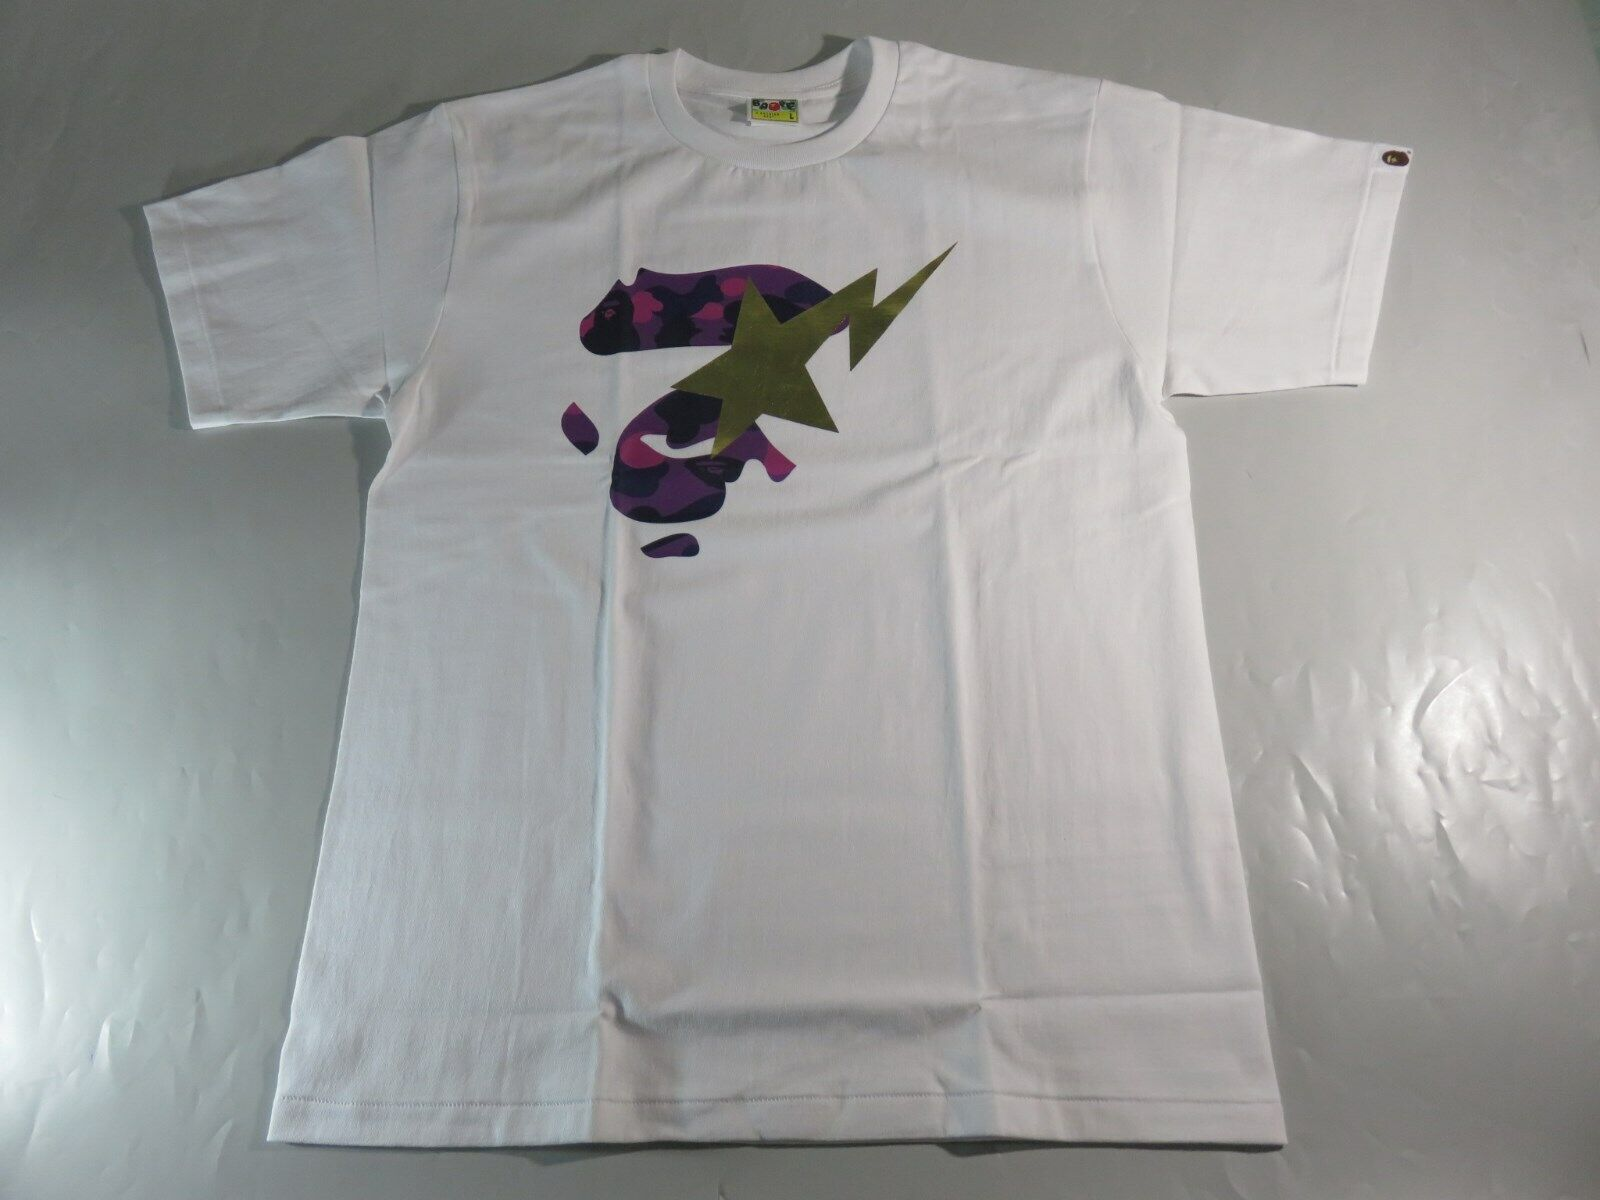 20633 bape color camo face on bapesta white purple tee XL